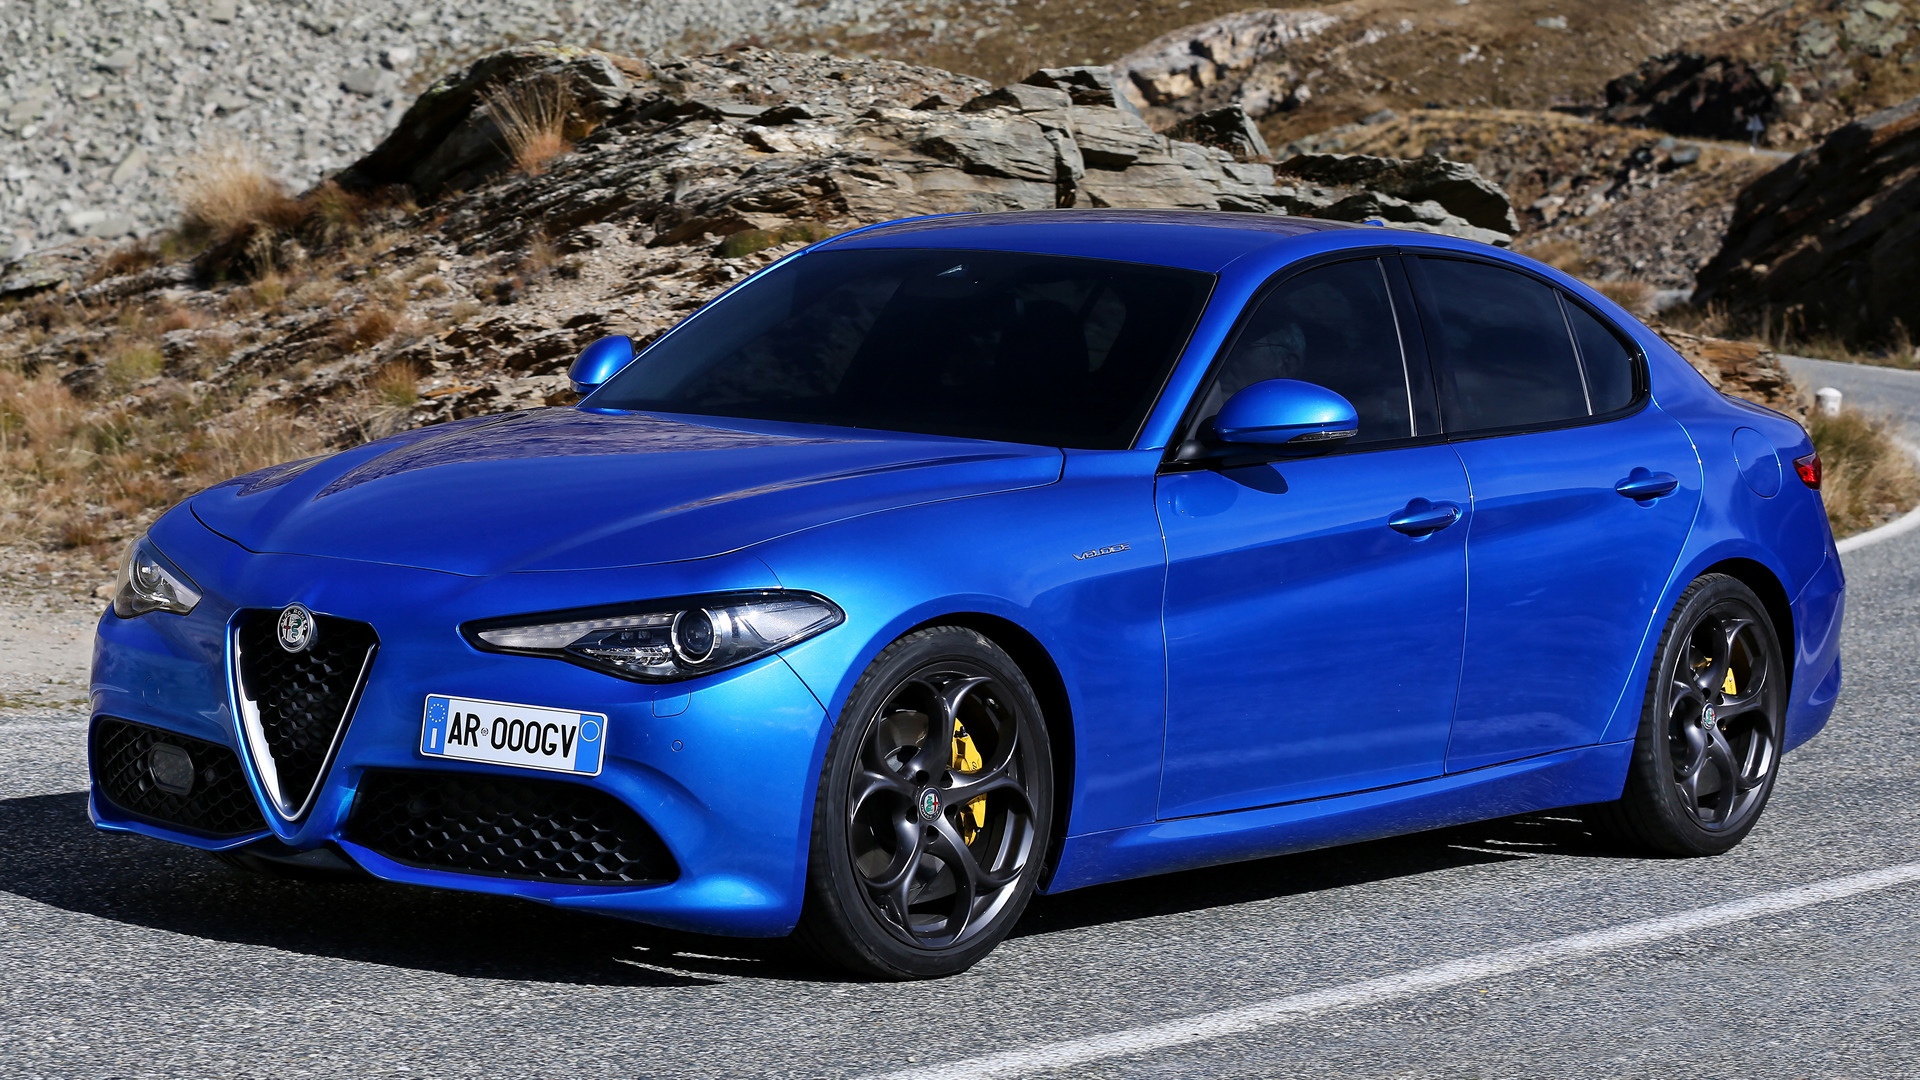 2016 Alfa Romeo Giulia Veloce Wallpapers And Hd Images